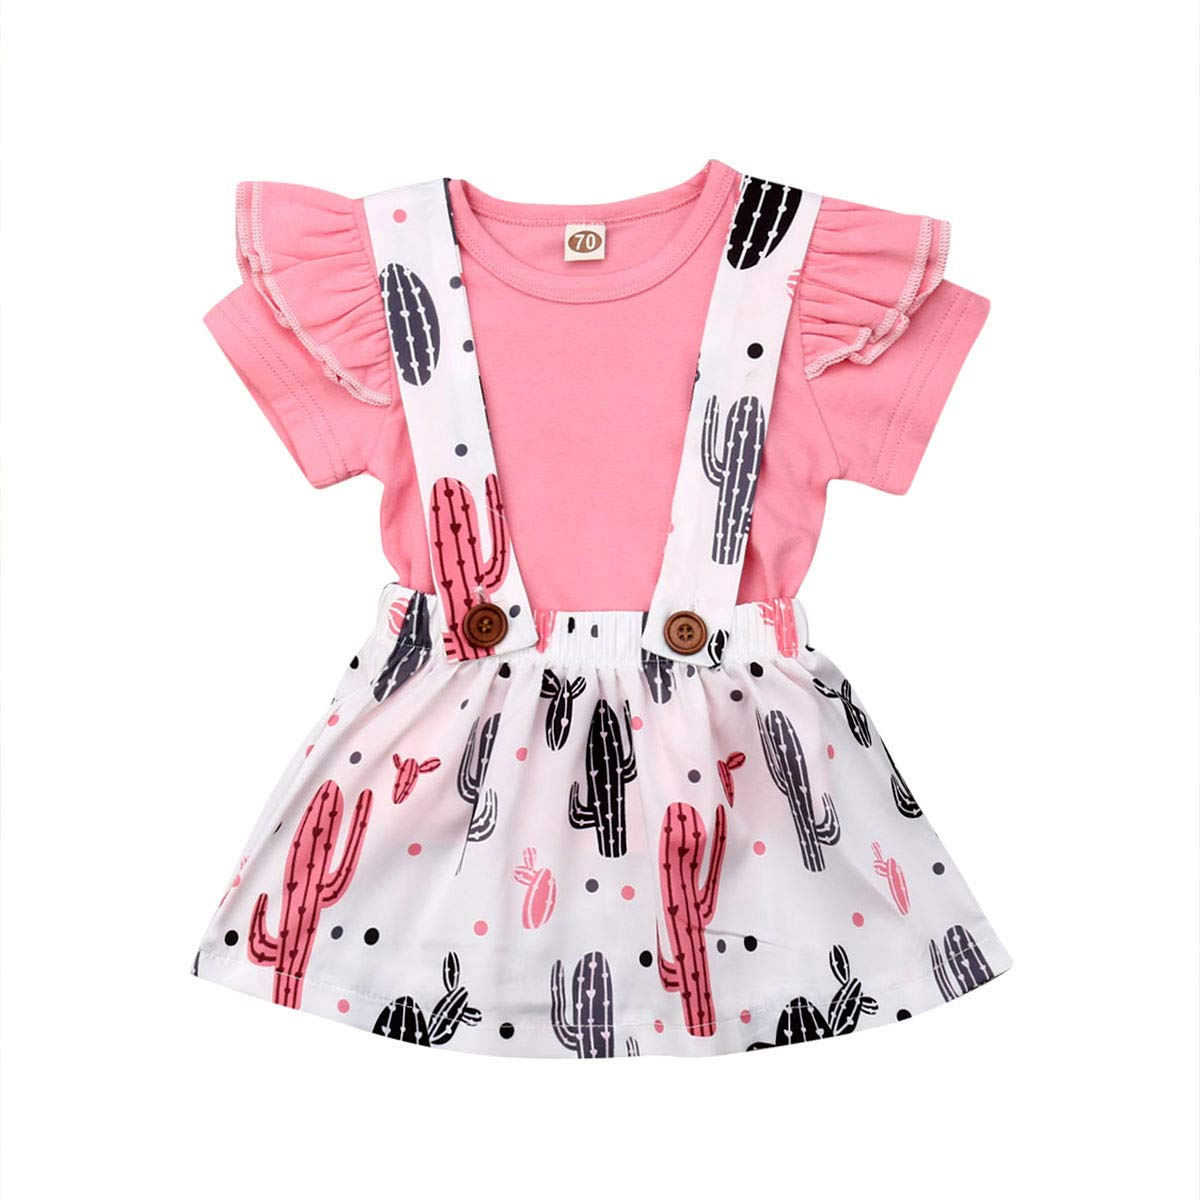 do.Cross Infant Baby Girls Clothes Set Coral Cactus Suspender Strap Skirt Suit Short Sleeve T-Shirts,Pink Tees,White Skirts